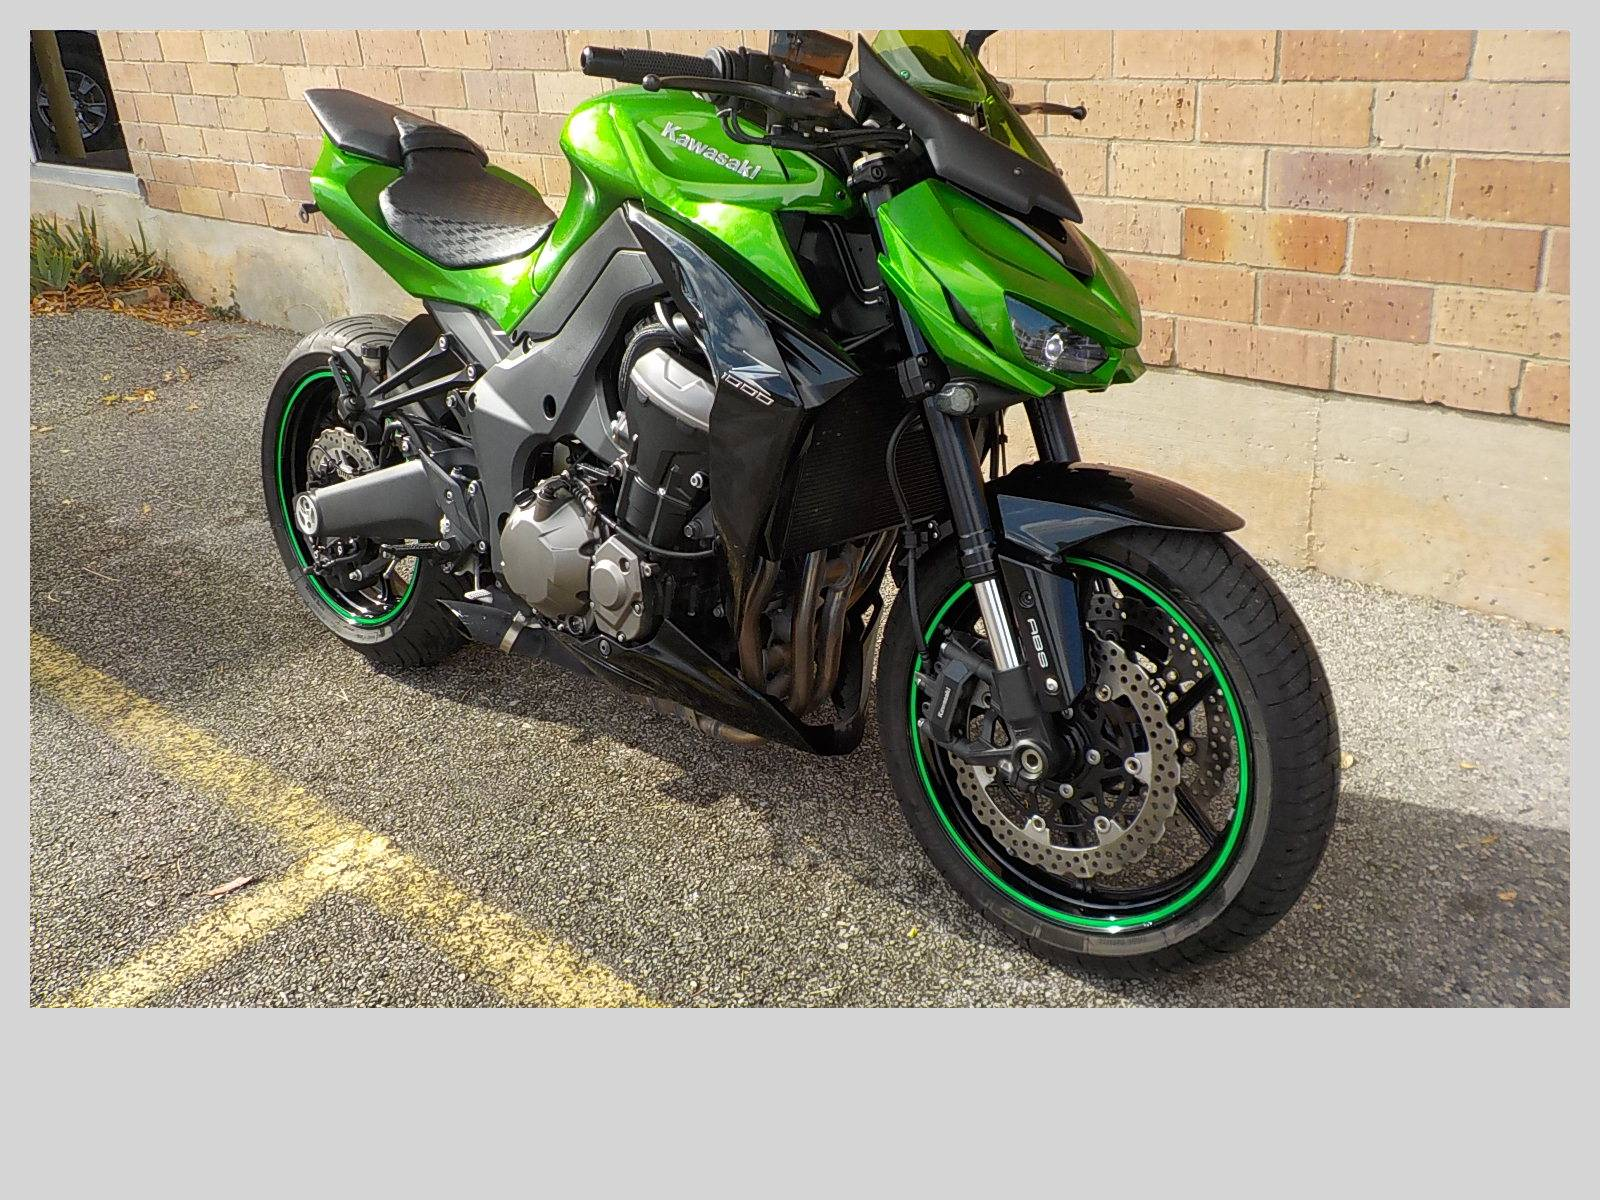 2015 Kawasaki Z1000 ABS in San Antonio, Texas - Photo 3